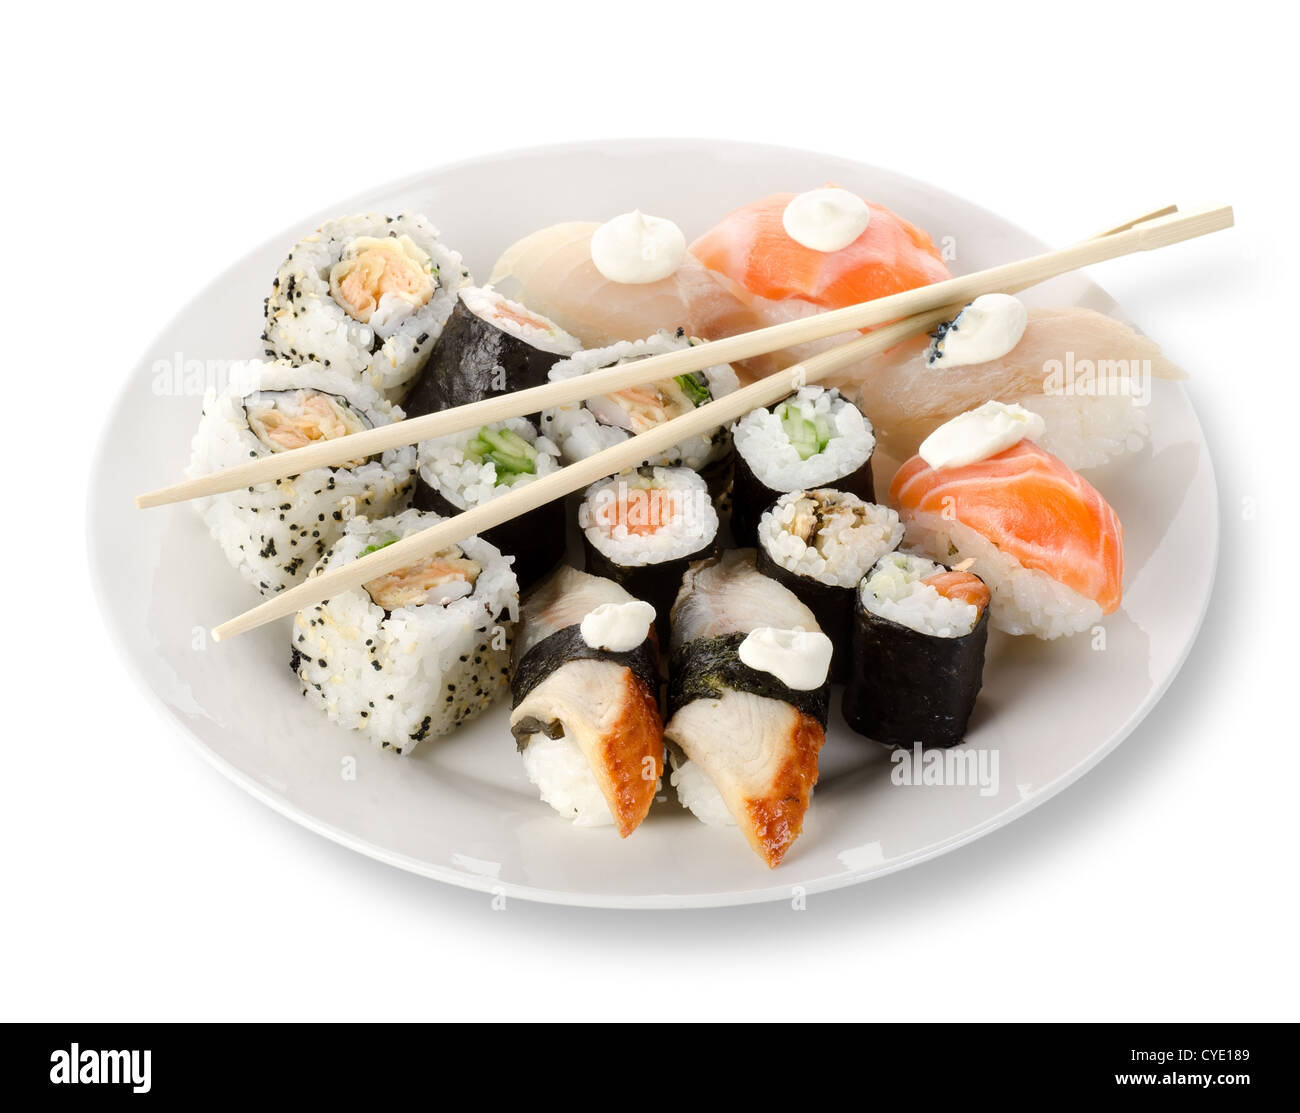 Sushi and rolls in a plate with sticks isolated on a white background. Clipping path - Stock Image